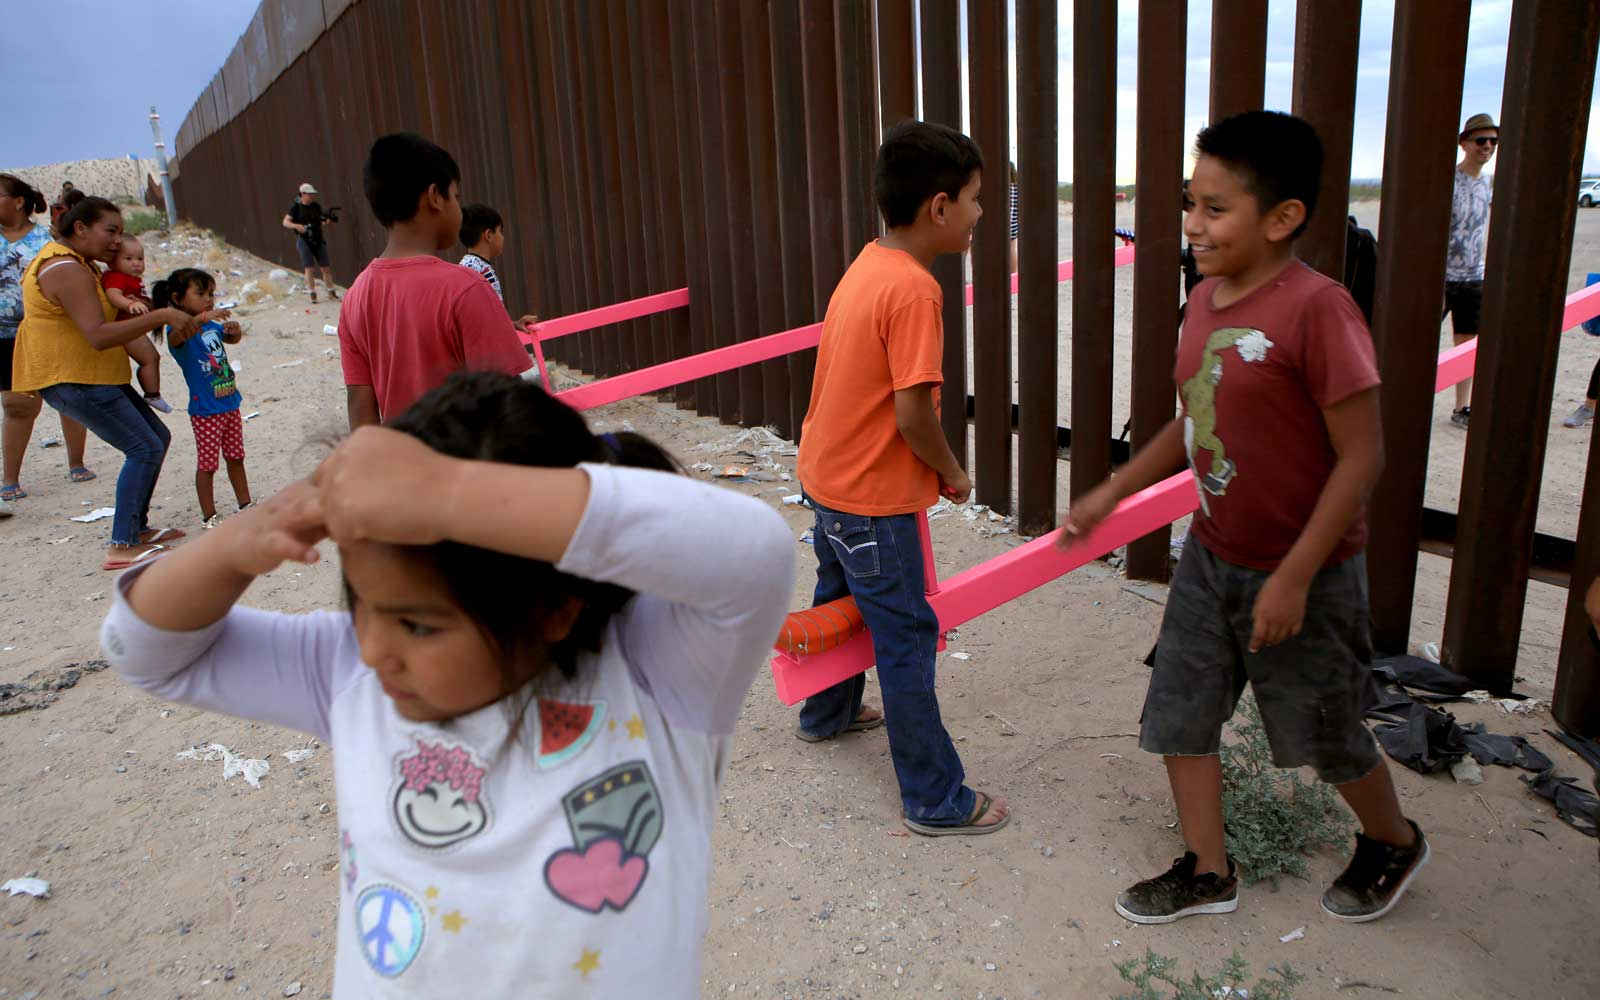 Artists Installed Massive Seesaws on the U.S.-Mexico Border so Kids Could Play Together